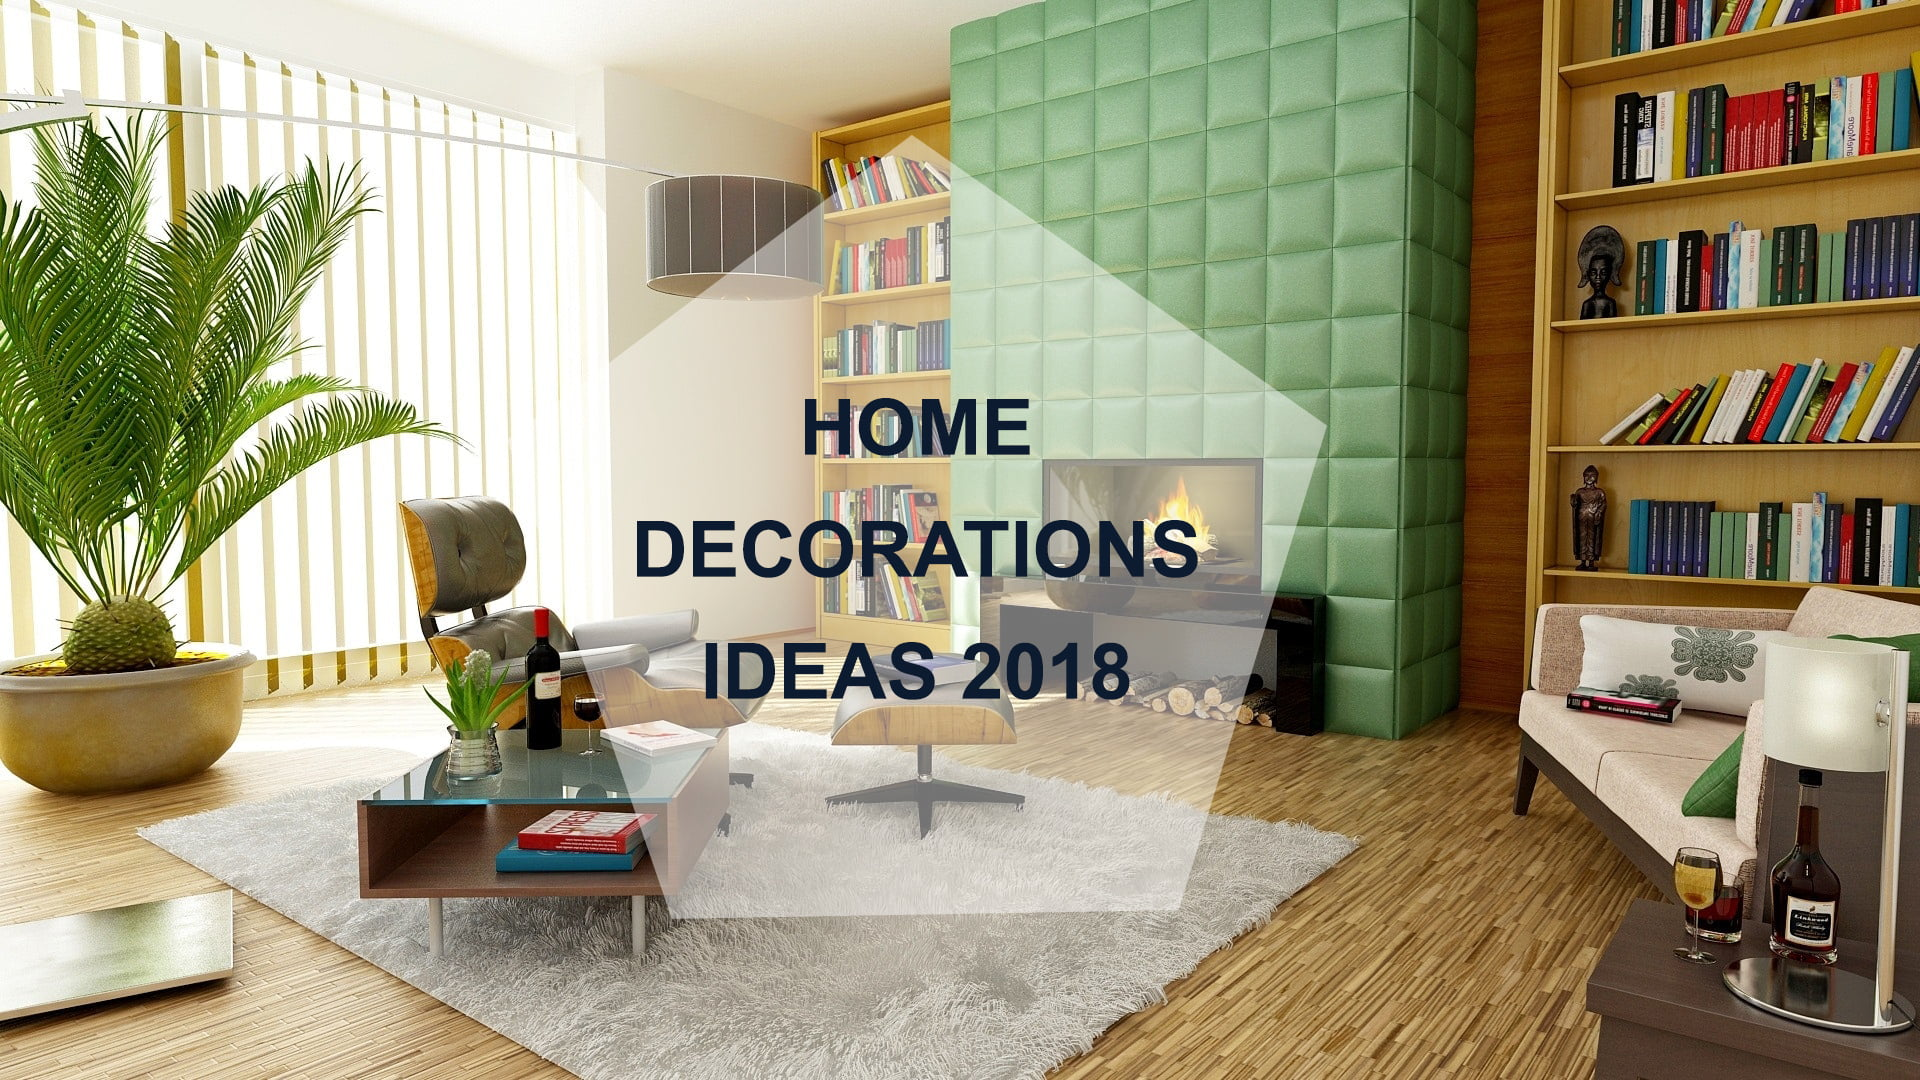 Home decorations ideas 2018